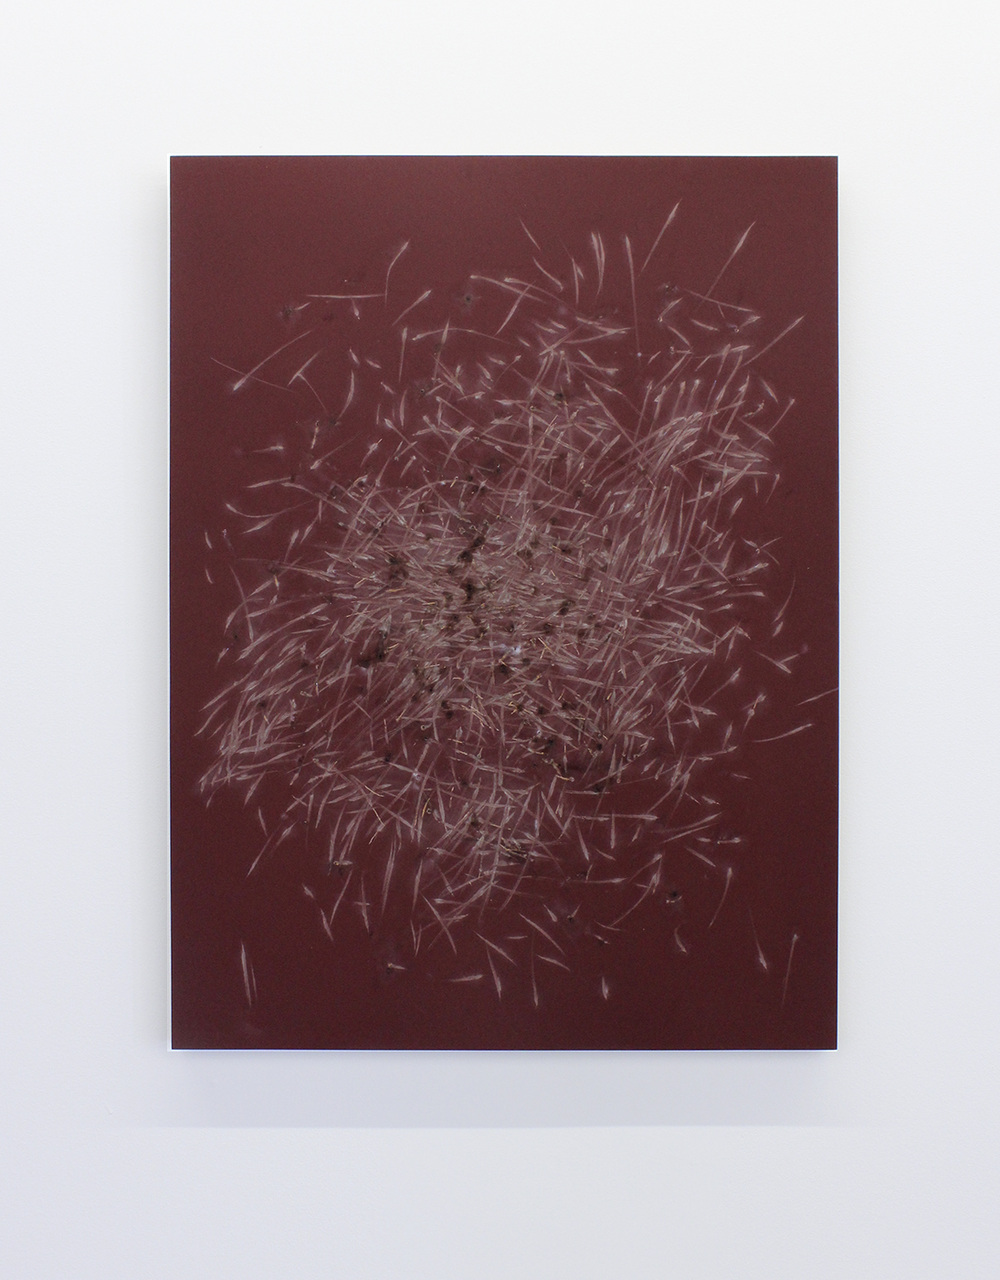 38.Wachholz_Ohne Titel (Reibflache),2015_Red phosphorous and binder on wood